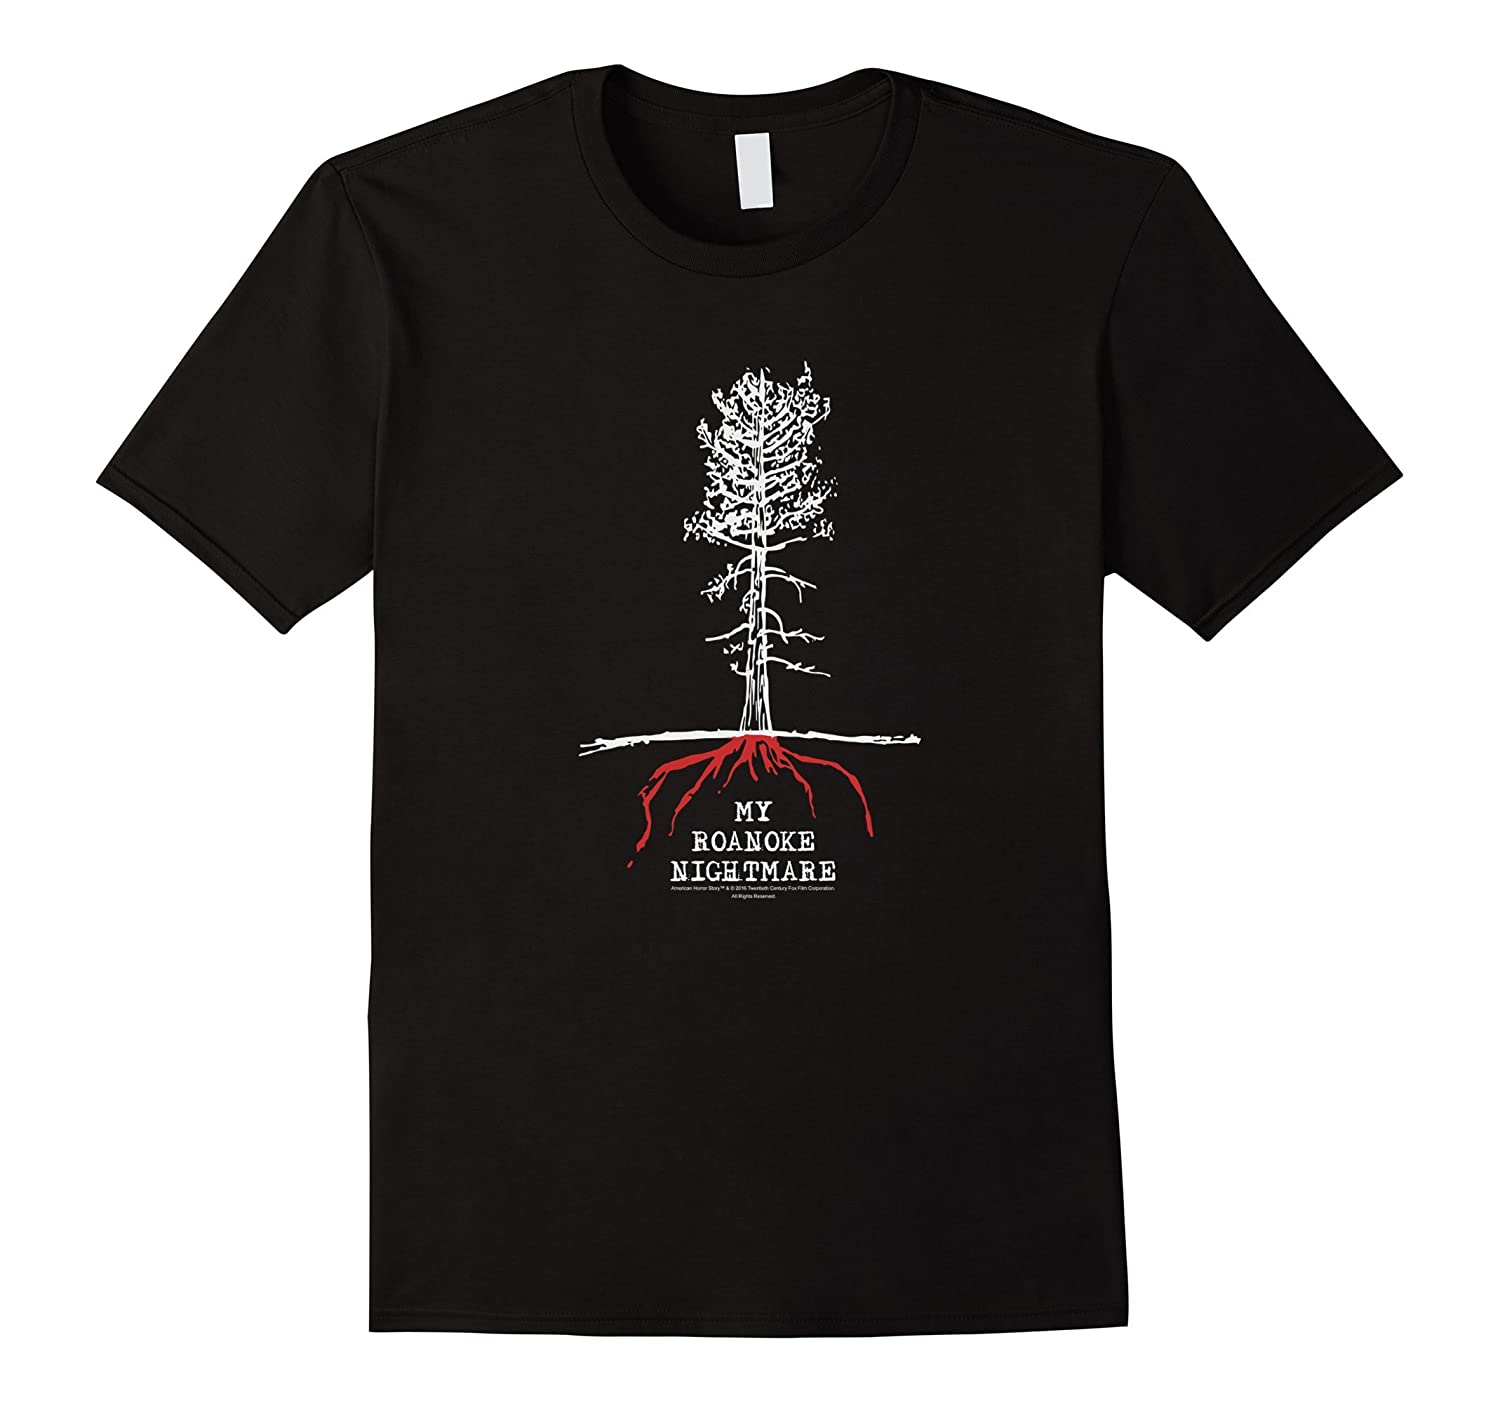 American Horror Story Roanoke Nightmare T-Shirt-Vaci